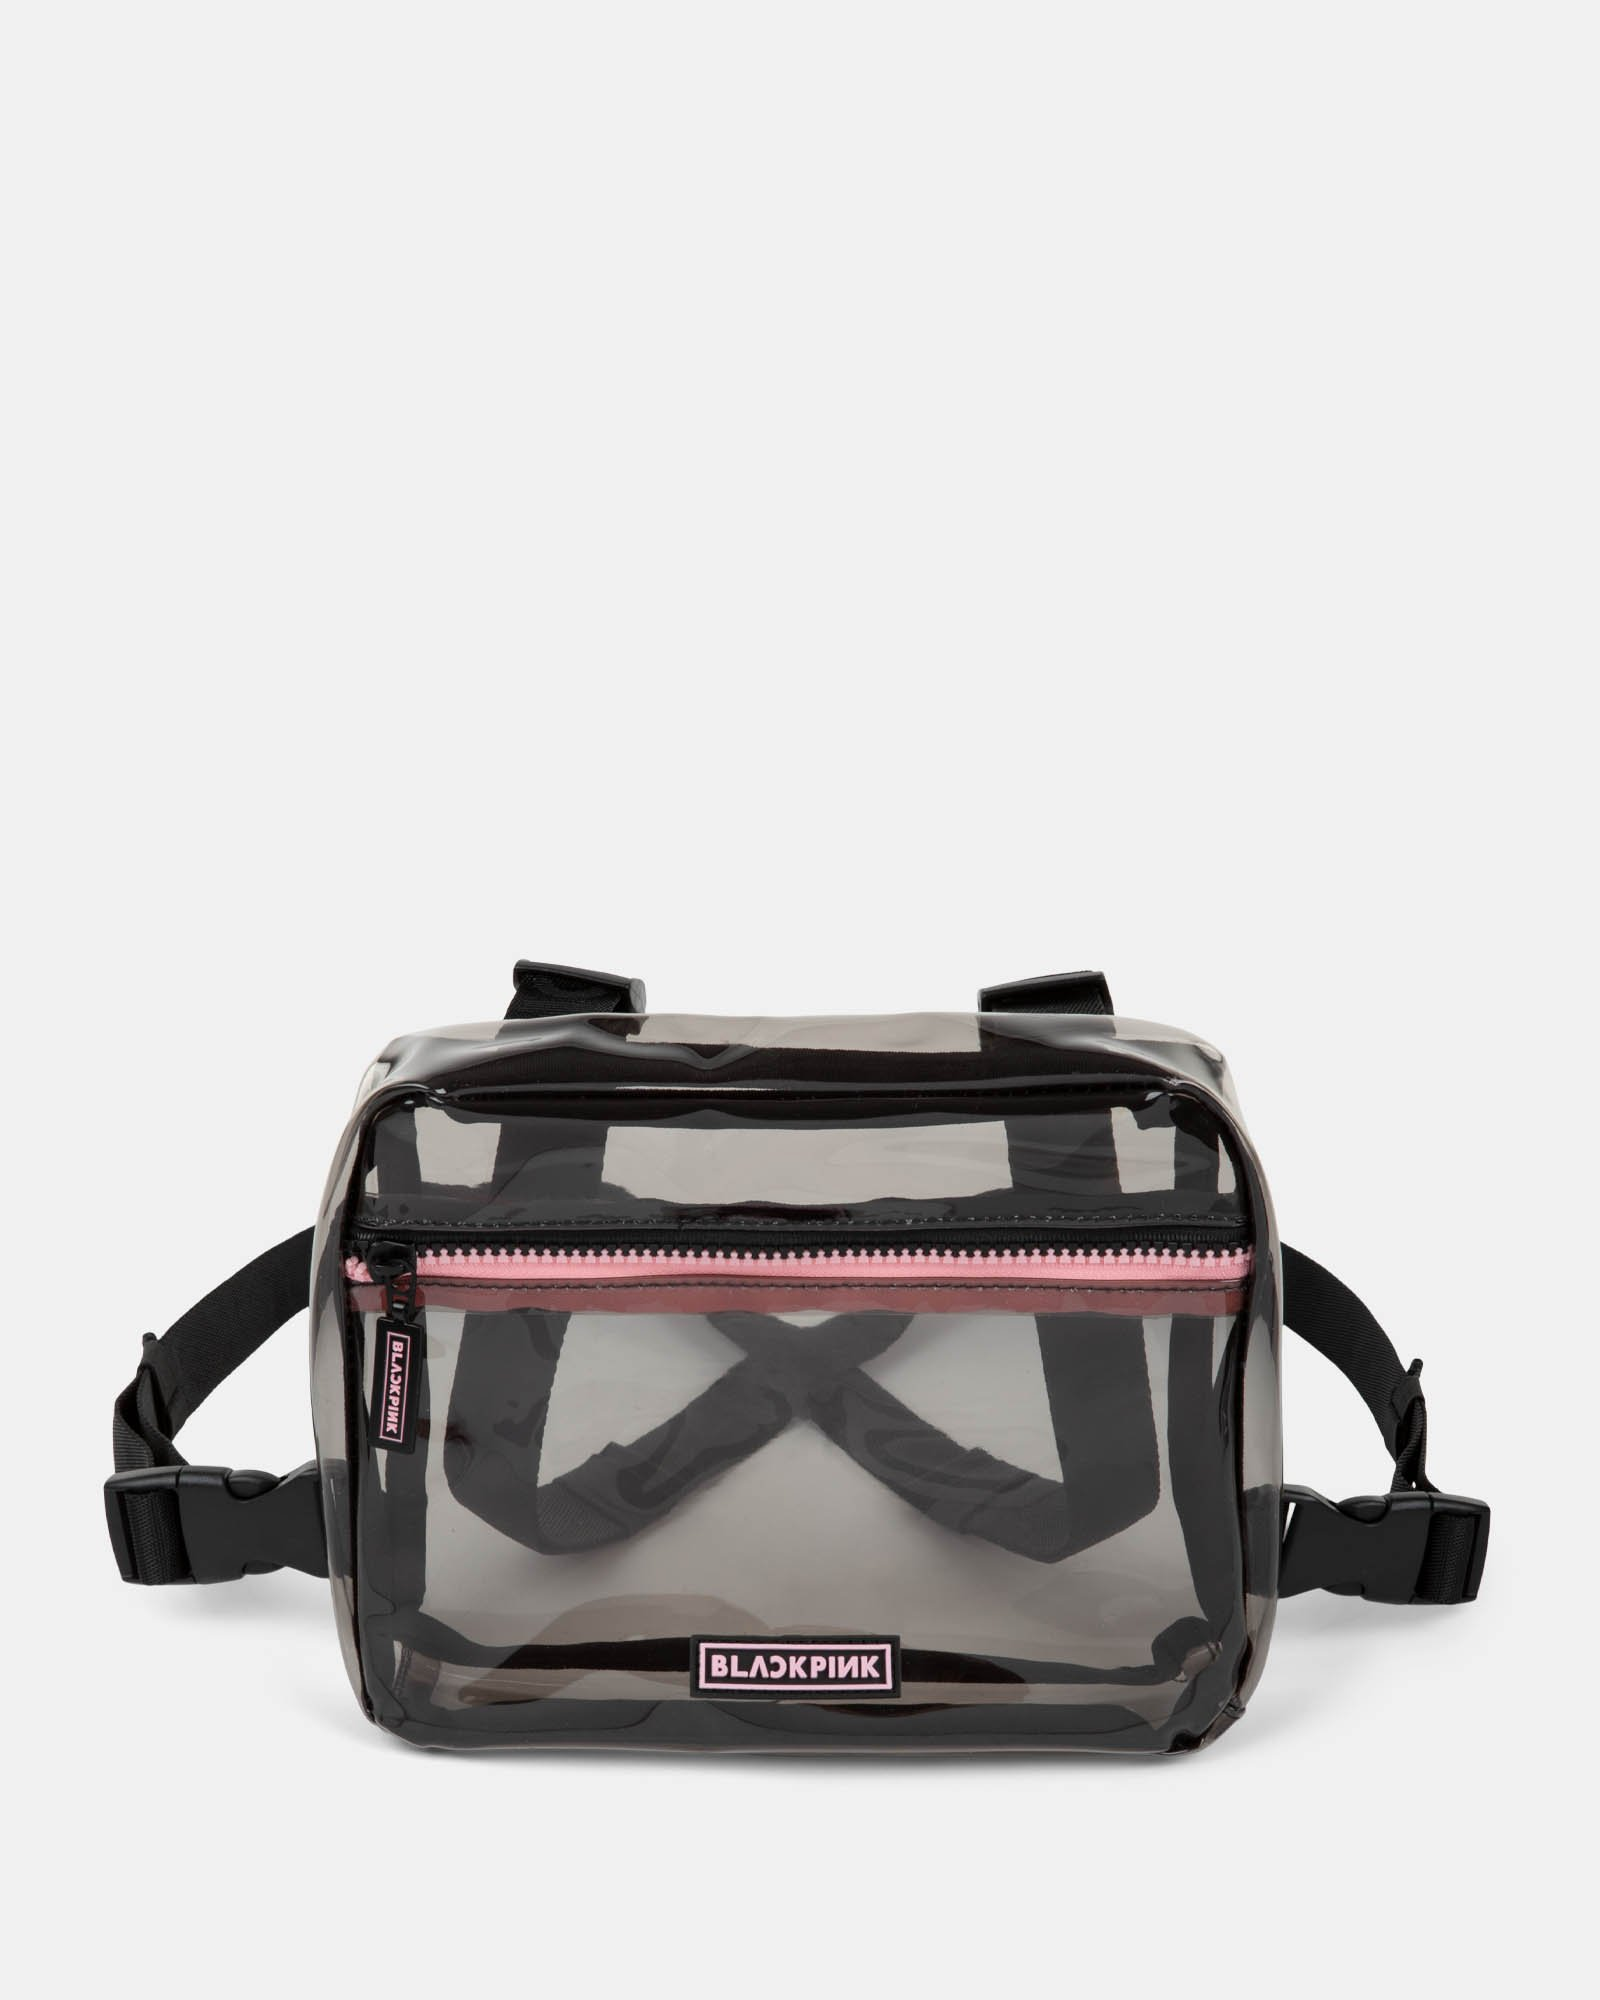 Blackpink - Clearly You Collection - black-tinted see-through frontal crossbody with a pink zipper - black - BLACKPINK - Zoom